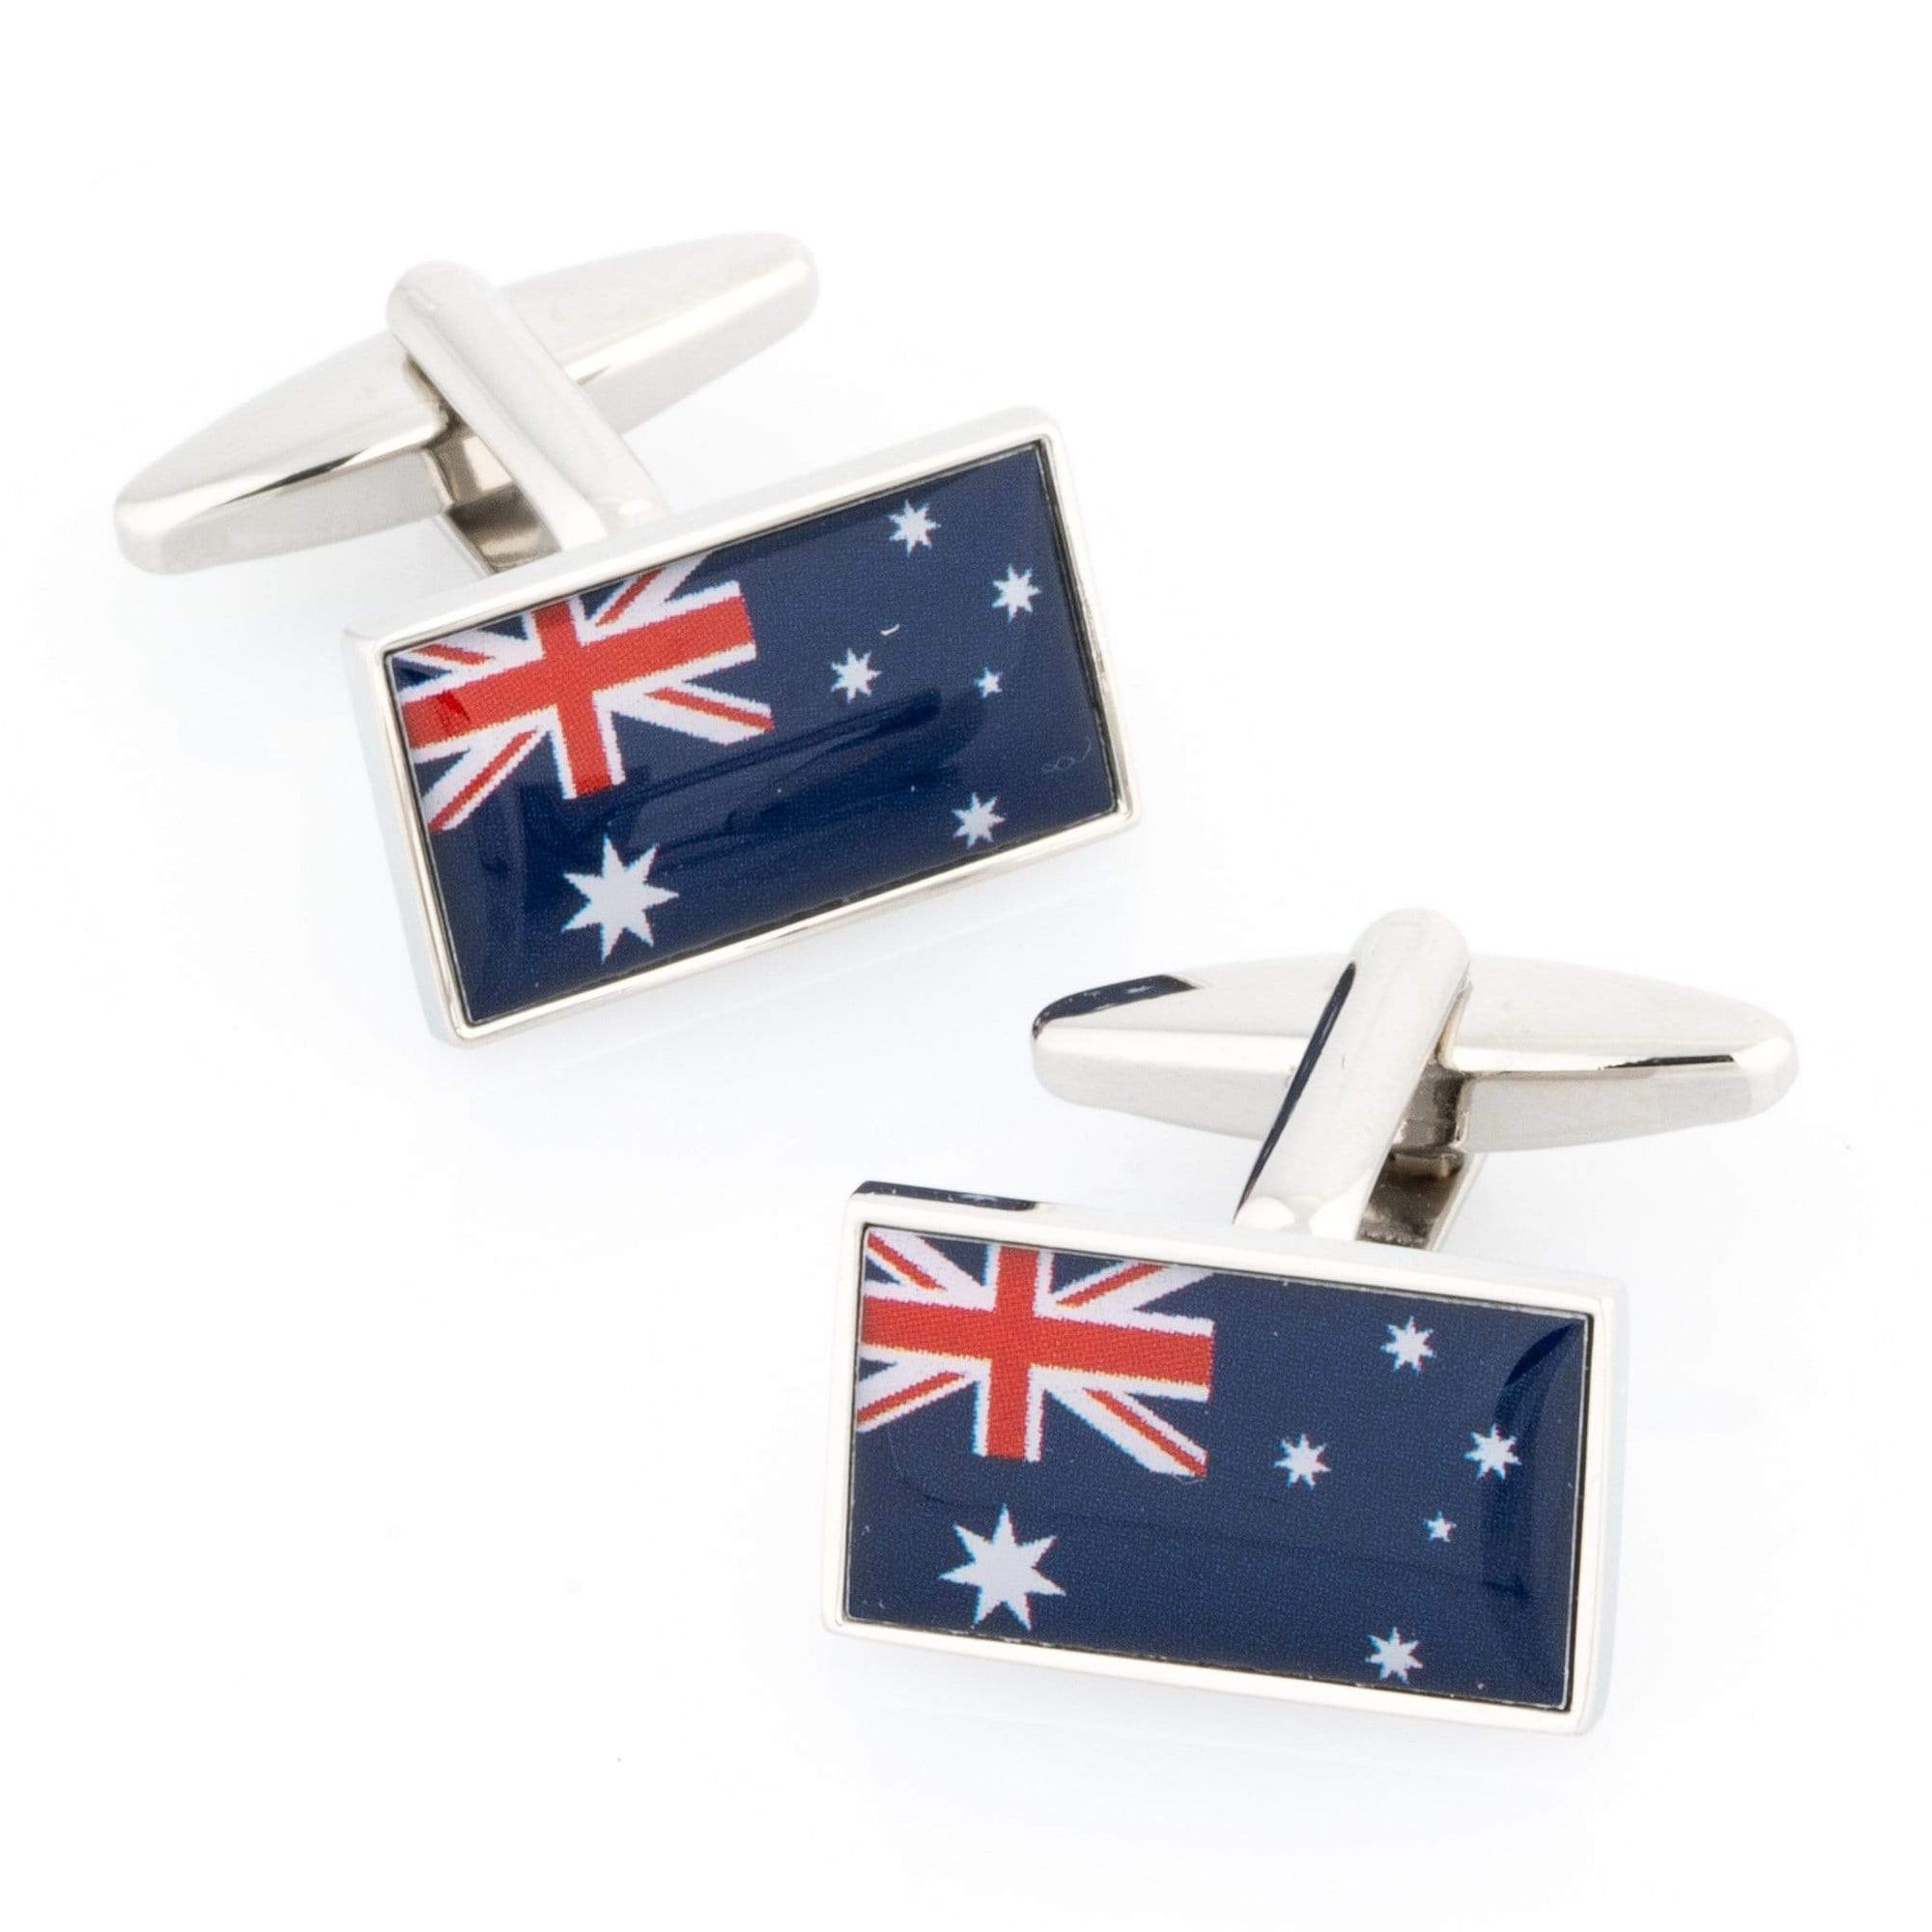 Australian Flag Cufflinks Novelty Cufflinks Clinks Australia Australian Flag Cufflinks